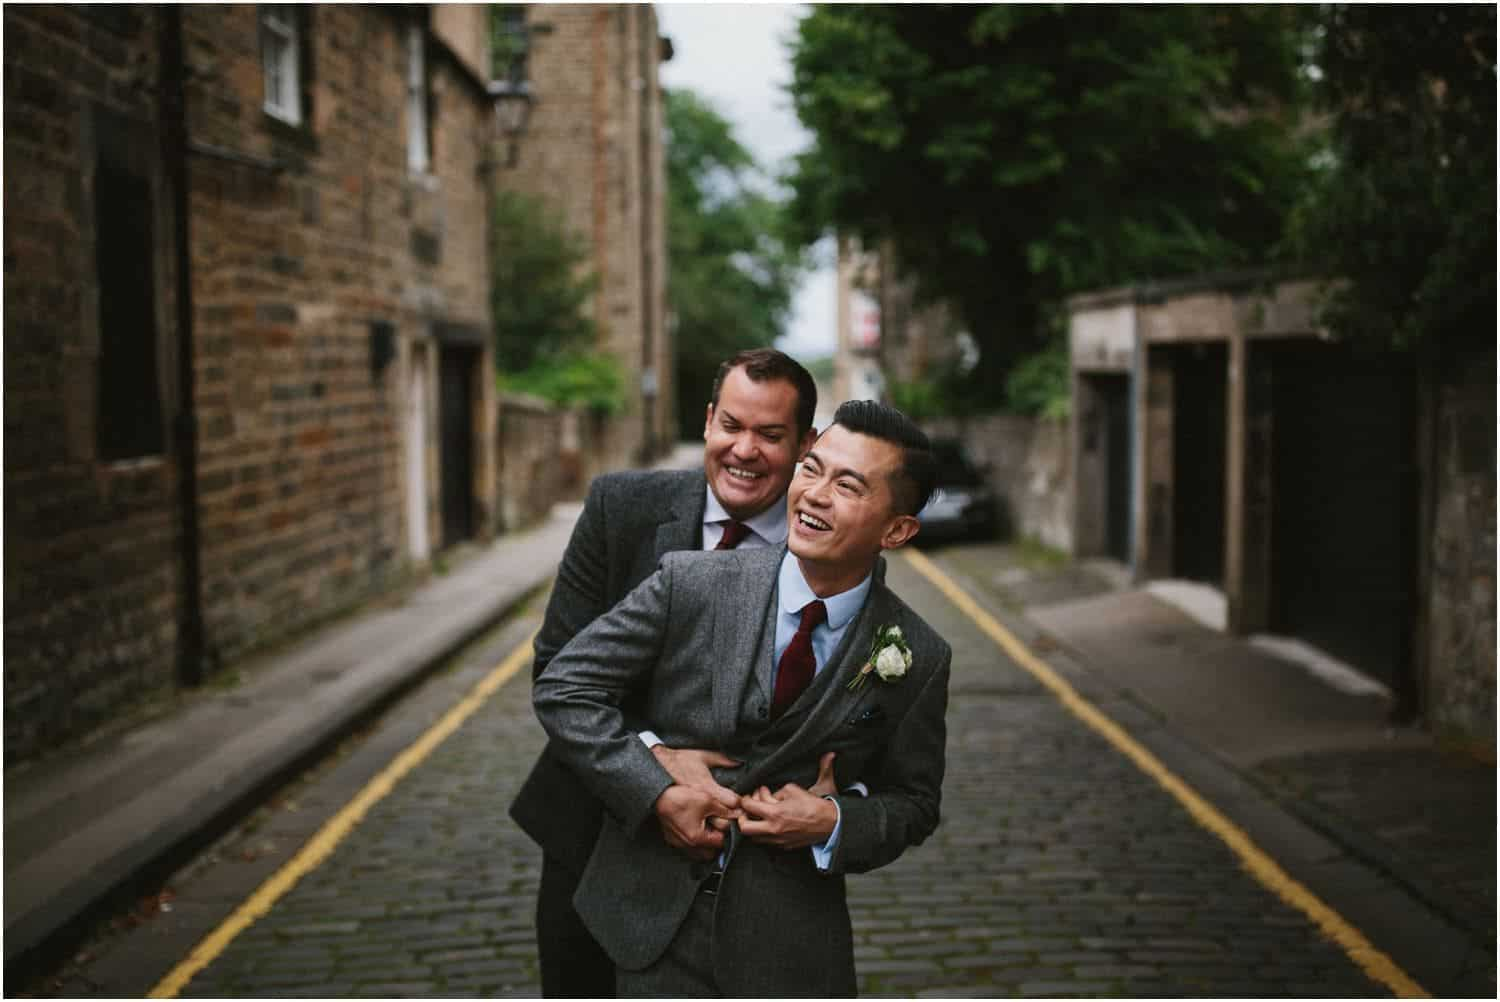 A same sex couple embrace in the streets at their Timberyard Edinburgh wedding